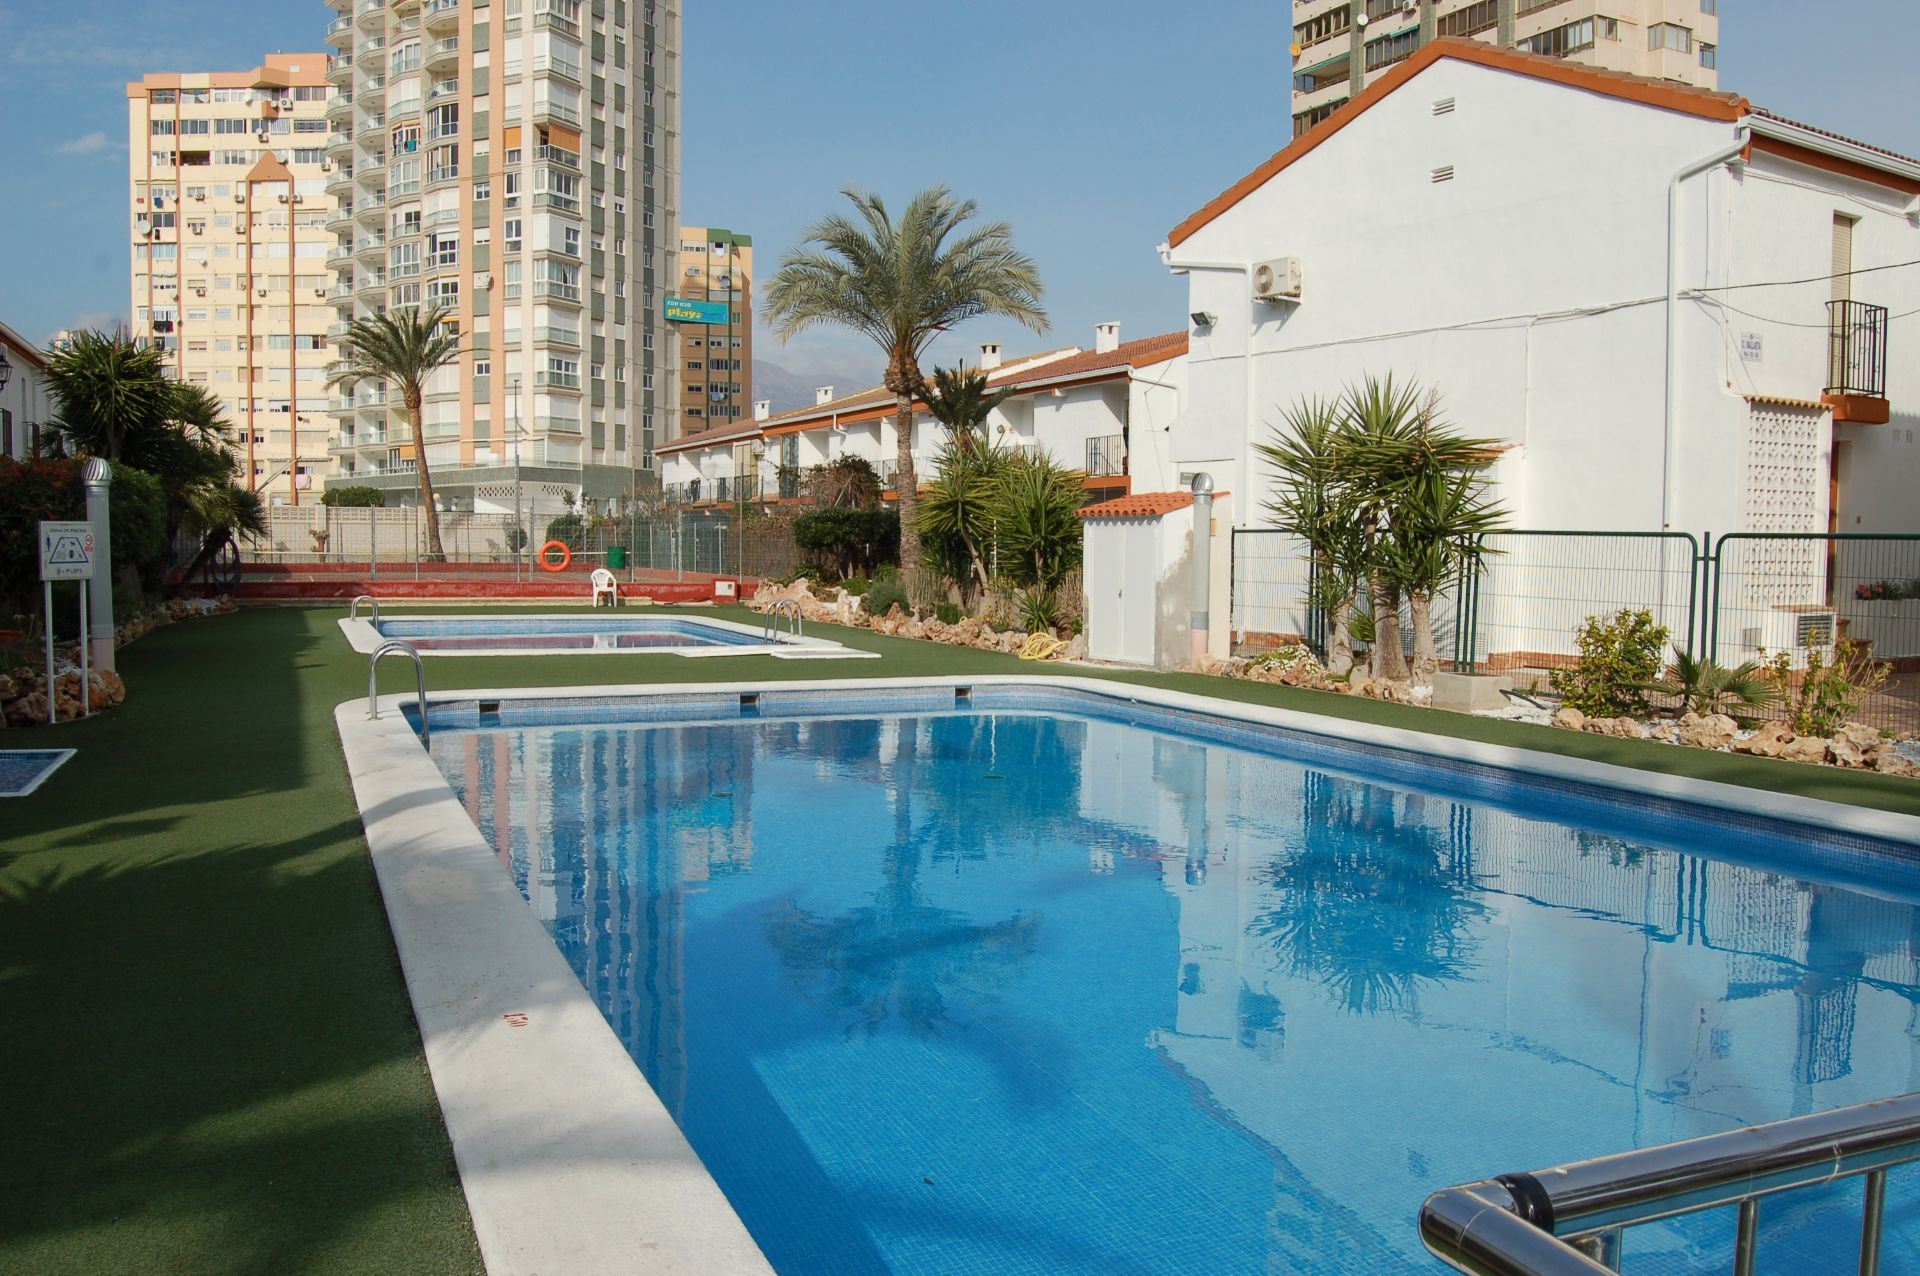 Duplex in Benidorm, Playa Levante, for sale